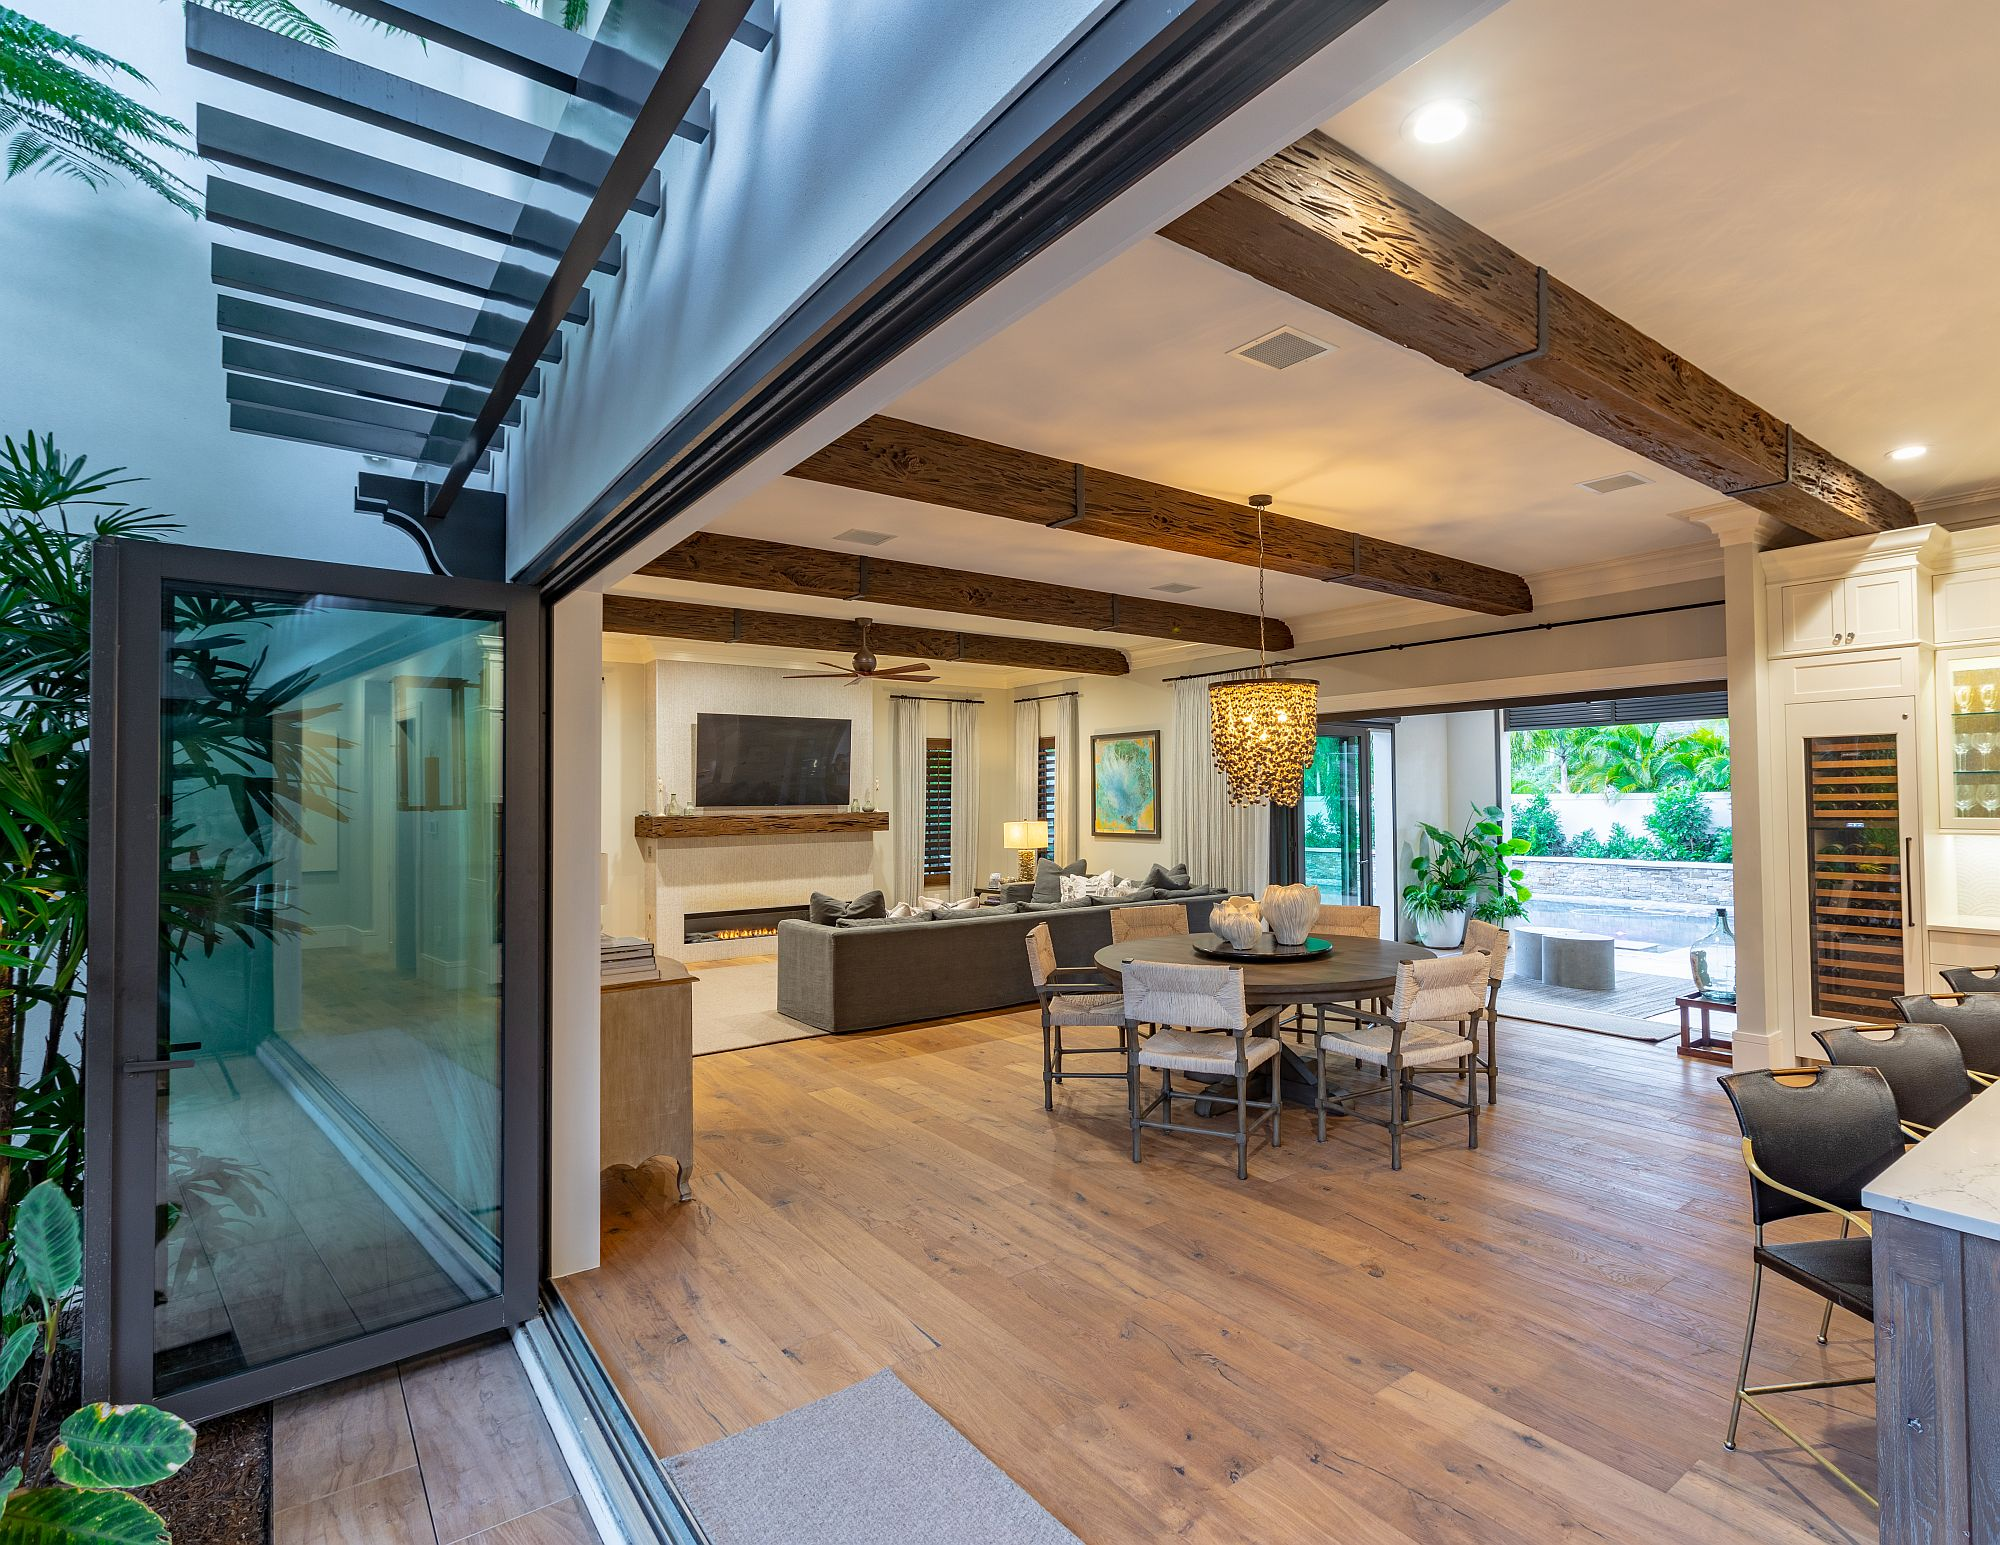 Nano wall systems and glass doors connect the great room with the patio and the outdoors